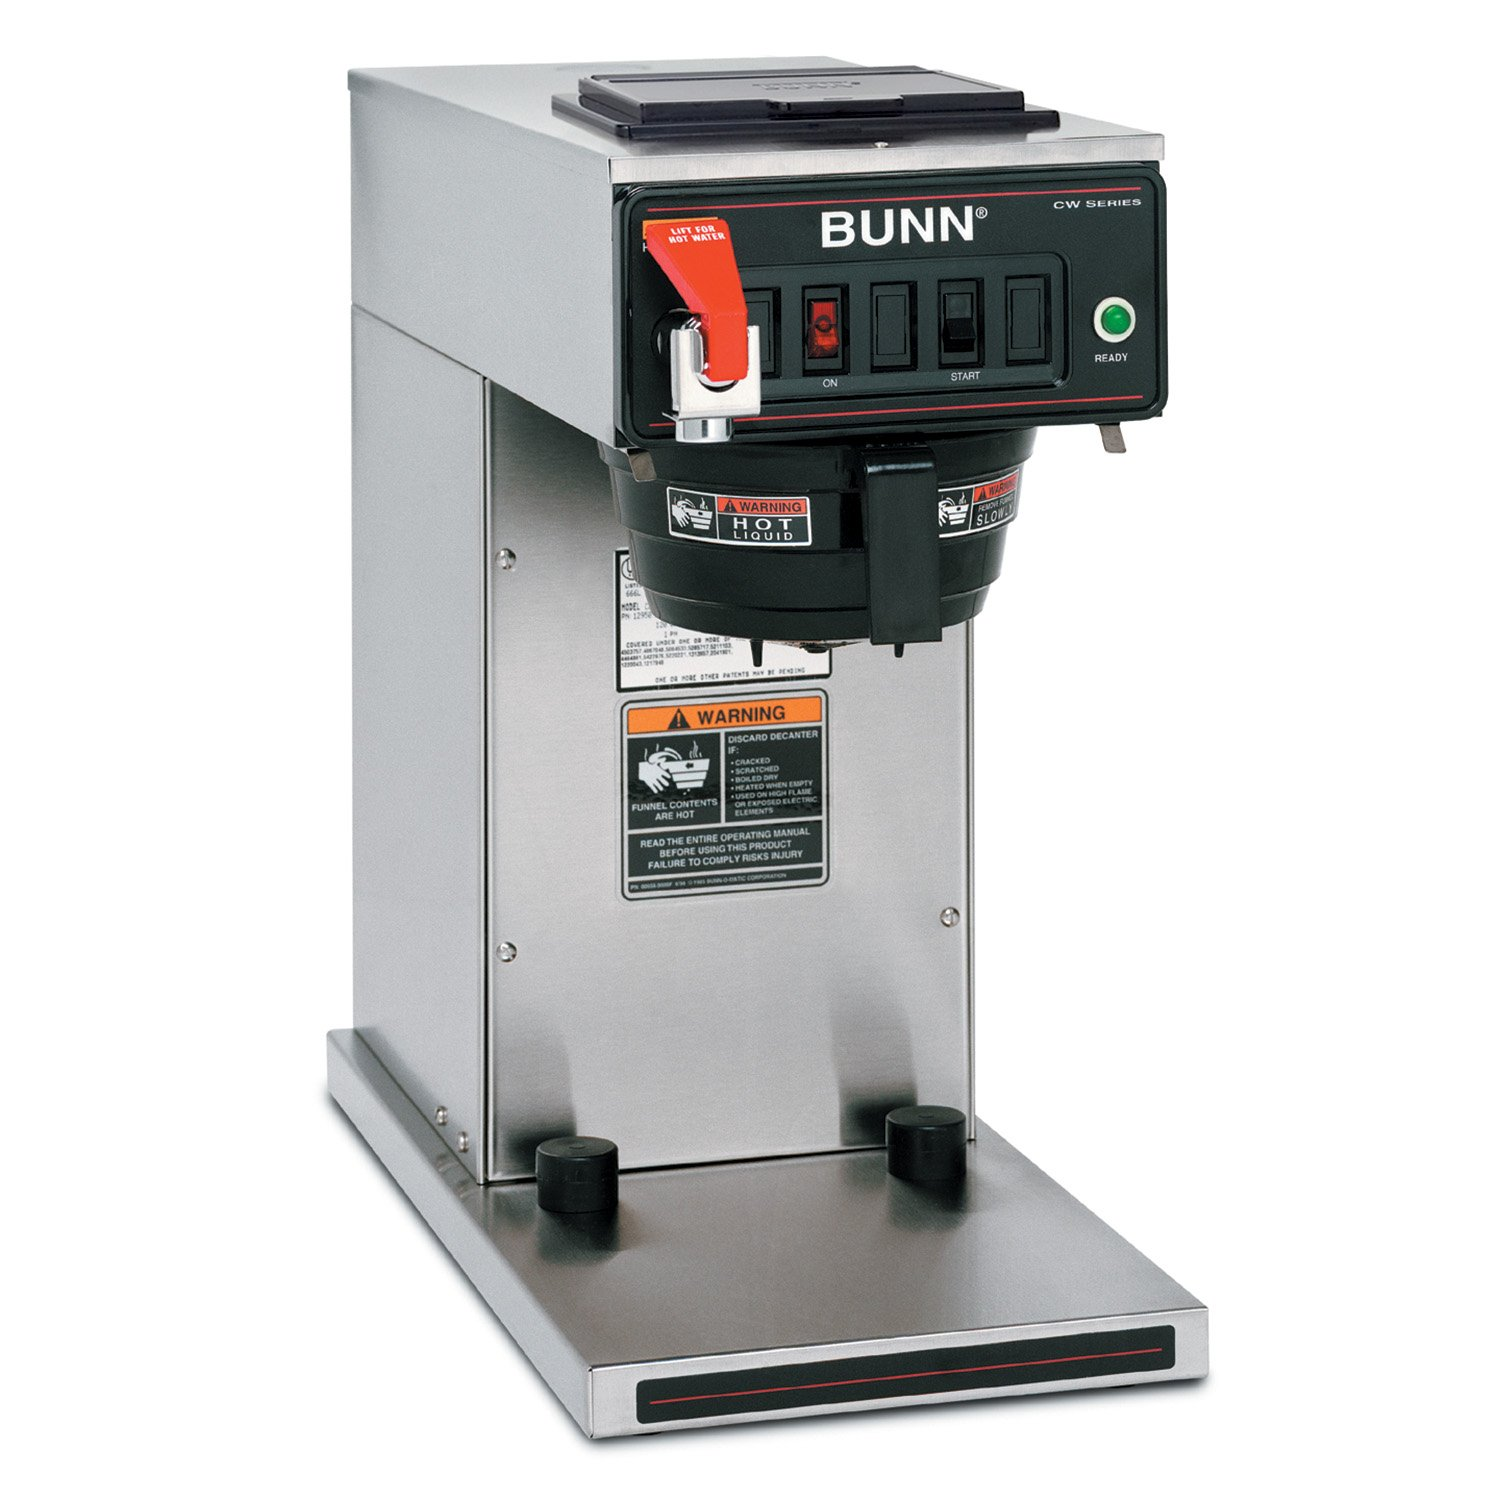 BUNN 12950.0360 12 Cup CWTF15-TC Automatic Commercial Thermal Coffee Brewer, Black/Stainless (120V)